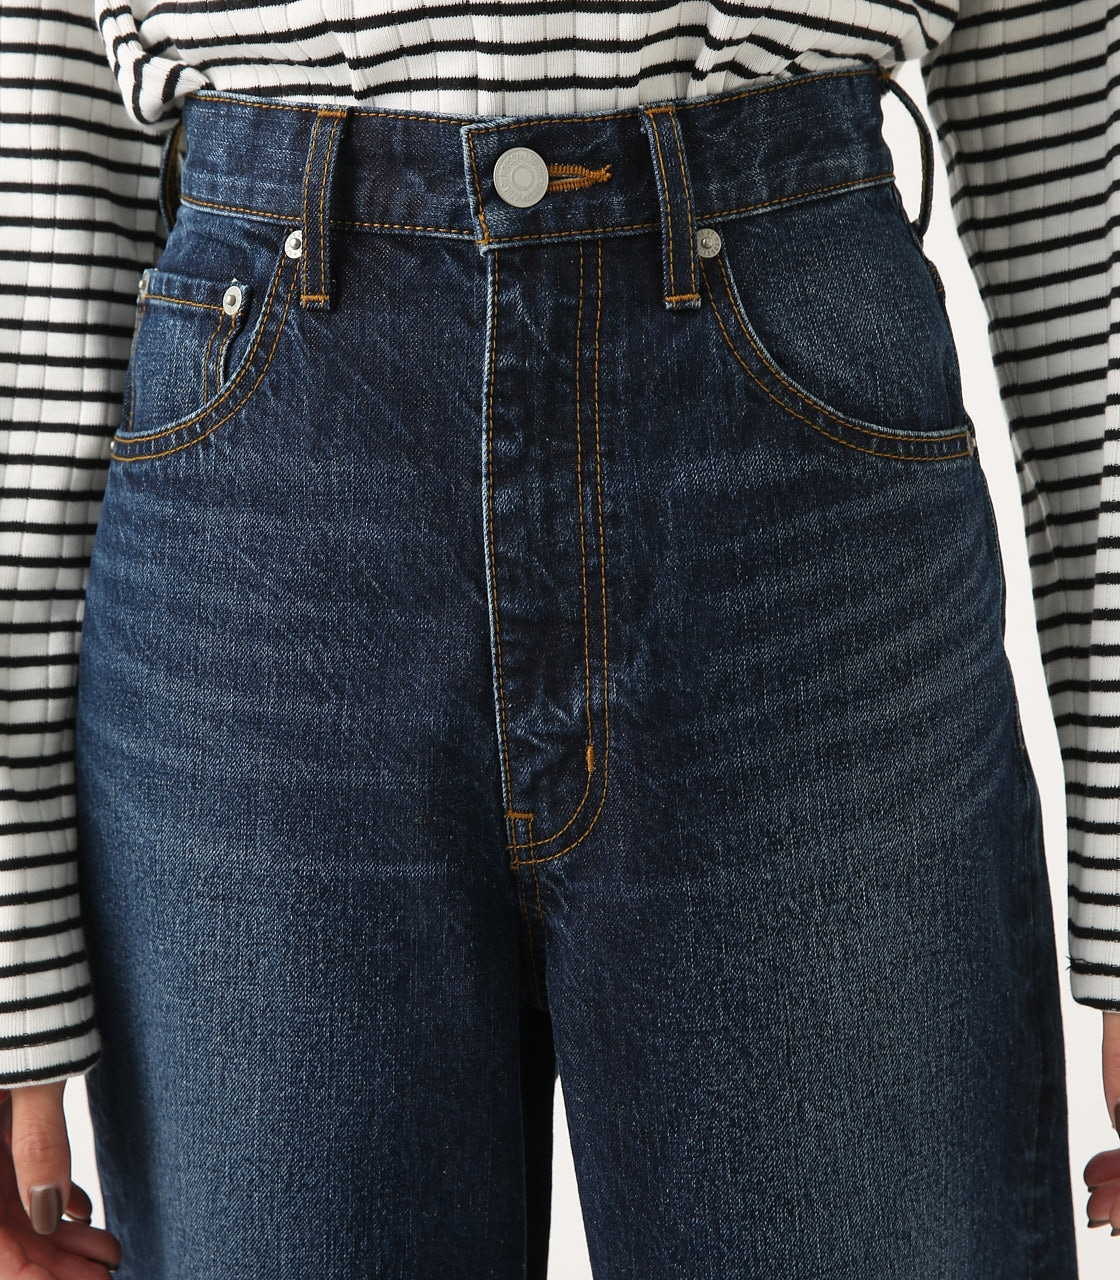 HIGH WAIST DENIM WIDE 詳細画像 D/BLU 8